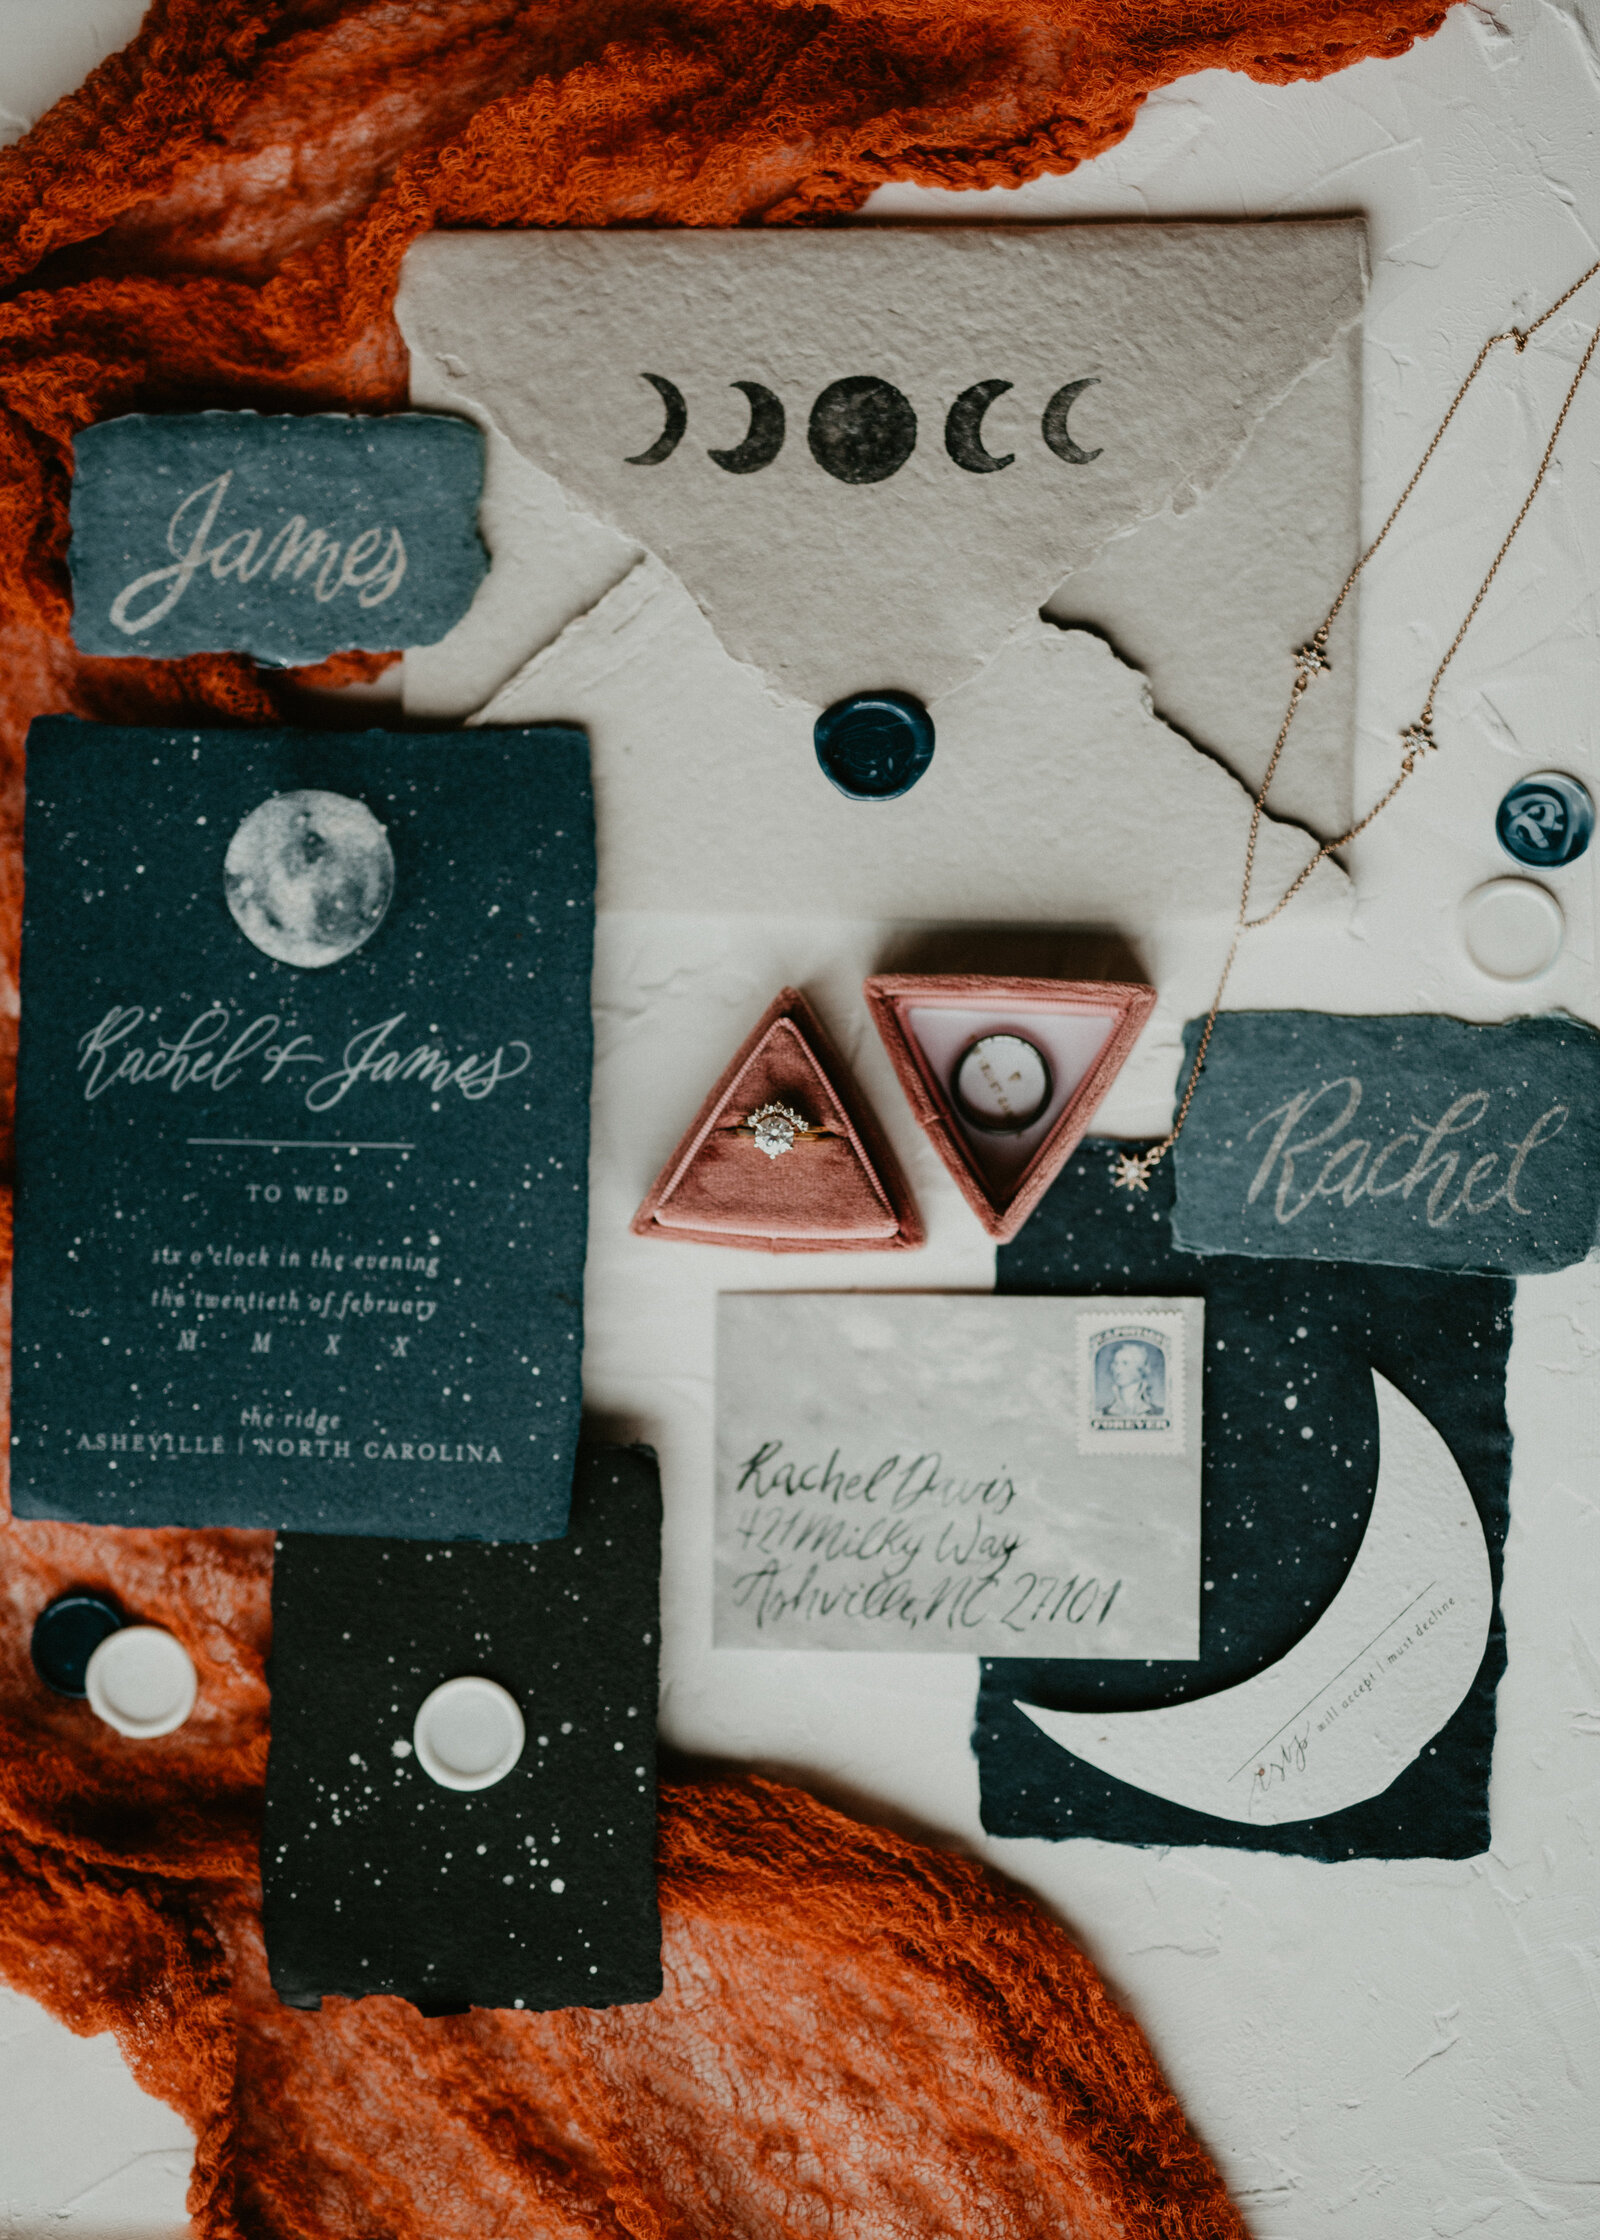 Asheville NC elopement with celestial boho vibes in the details